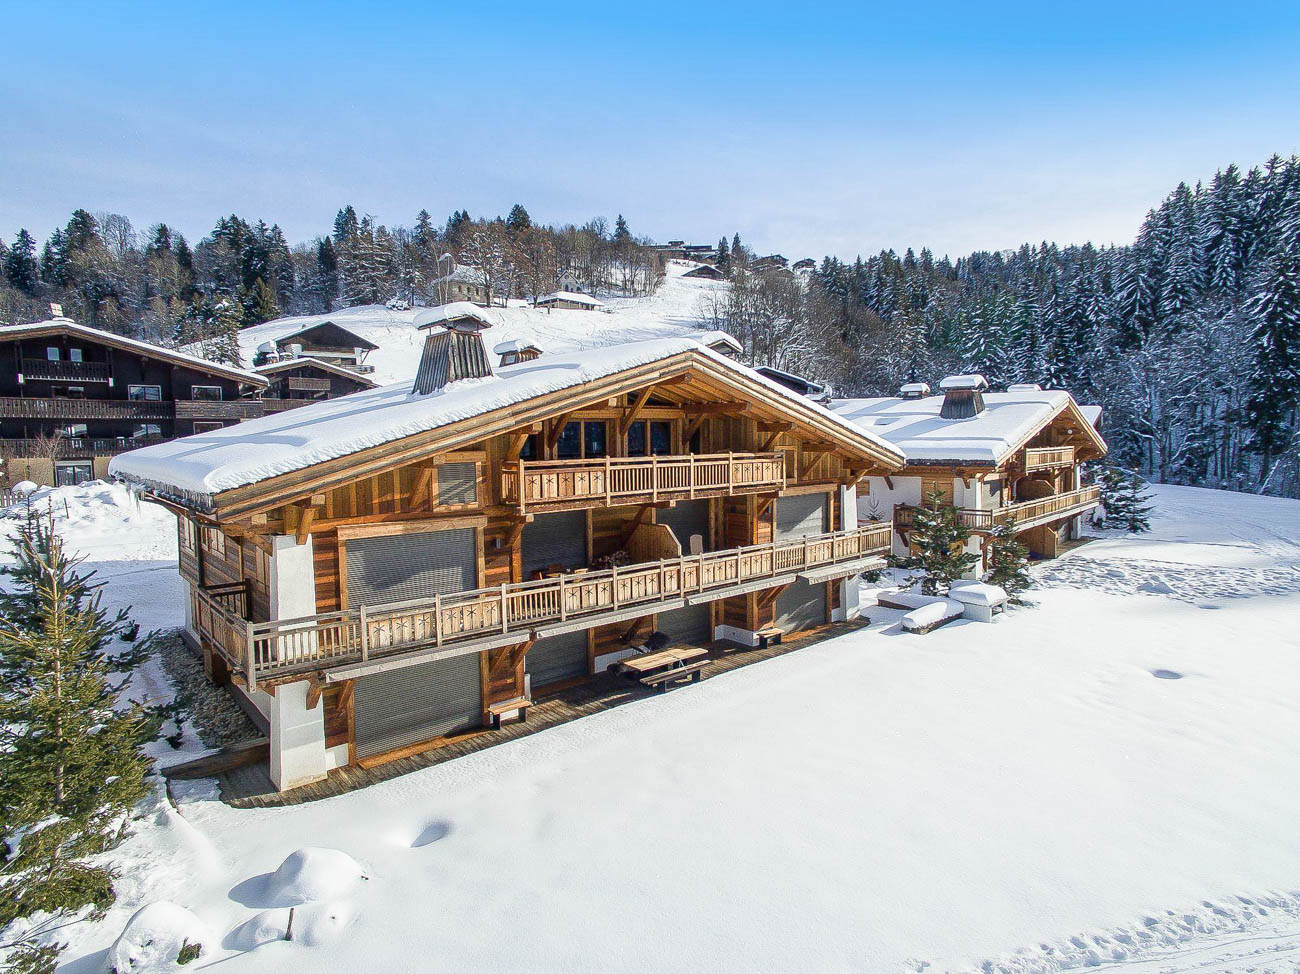 megeve location Morjane